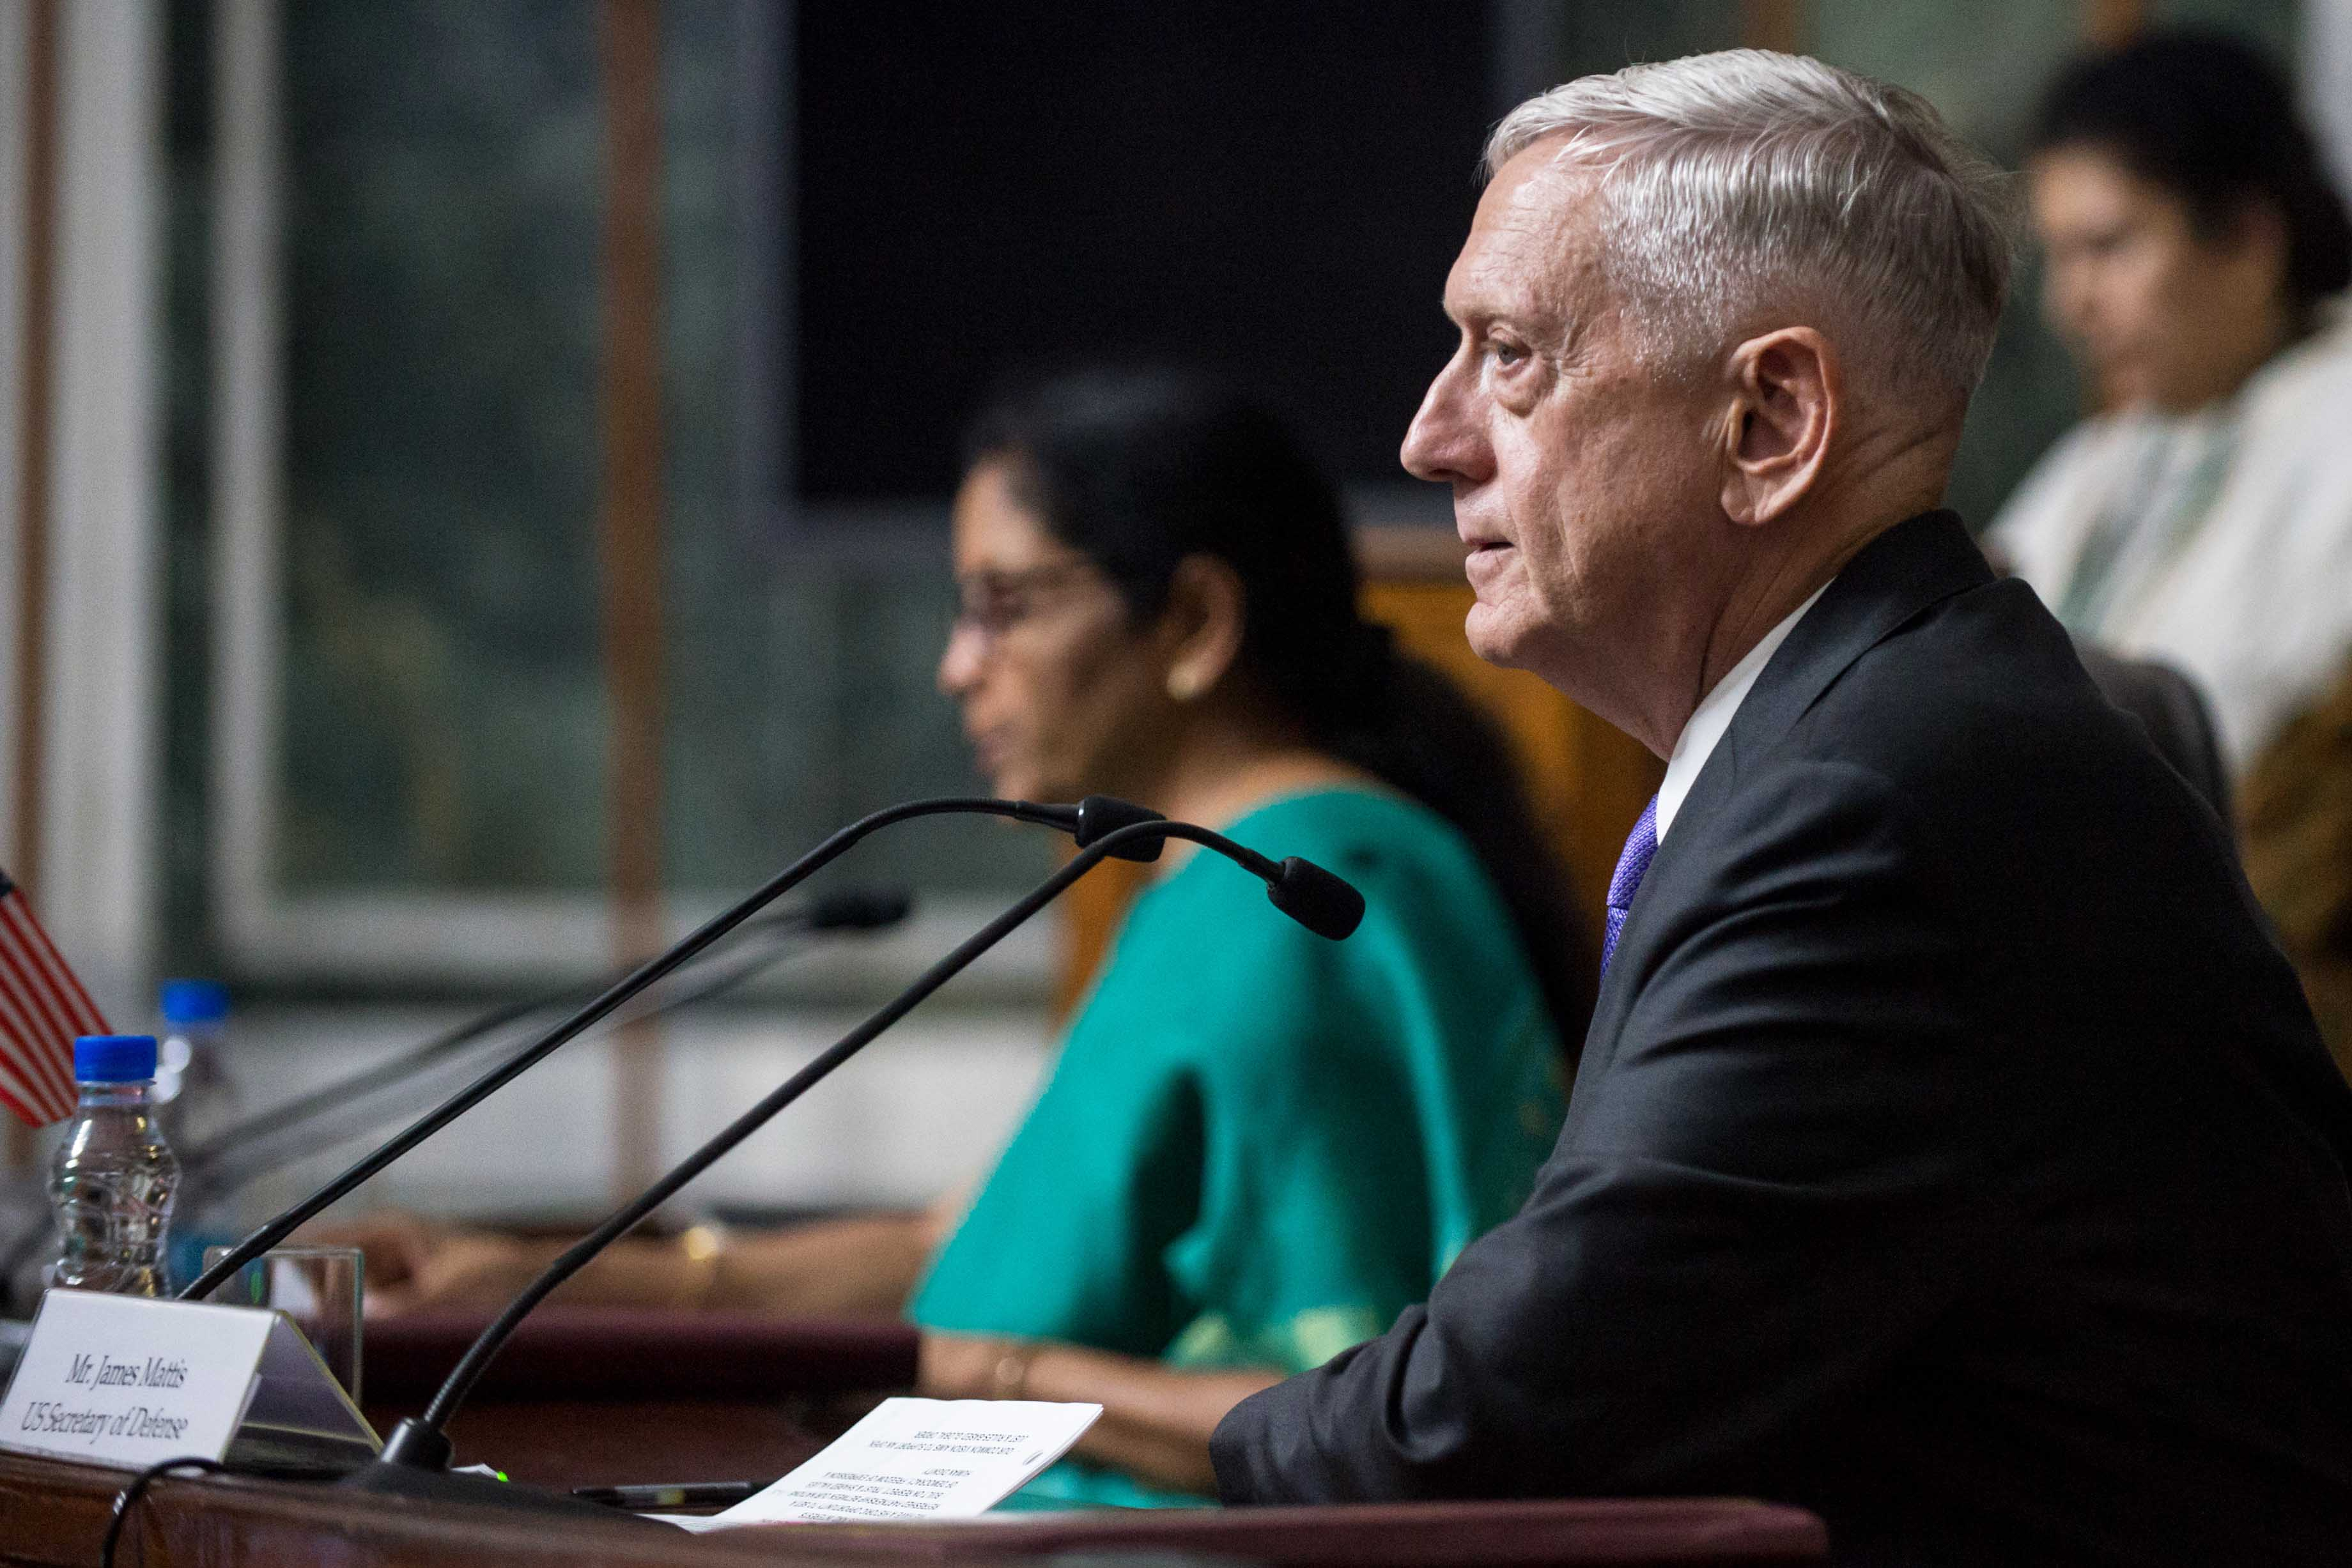 Secretary of Defense Jim Mattis and India's Defence Minister Nirmala Sitharaman address the press in New Delhi on Sept. 26, 2017. (DOD photo by U.S. Air Force Staff Sgt. Jette Carr)